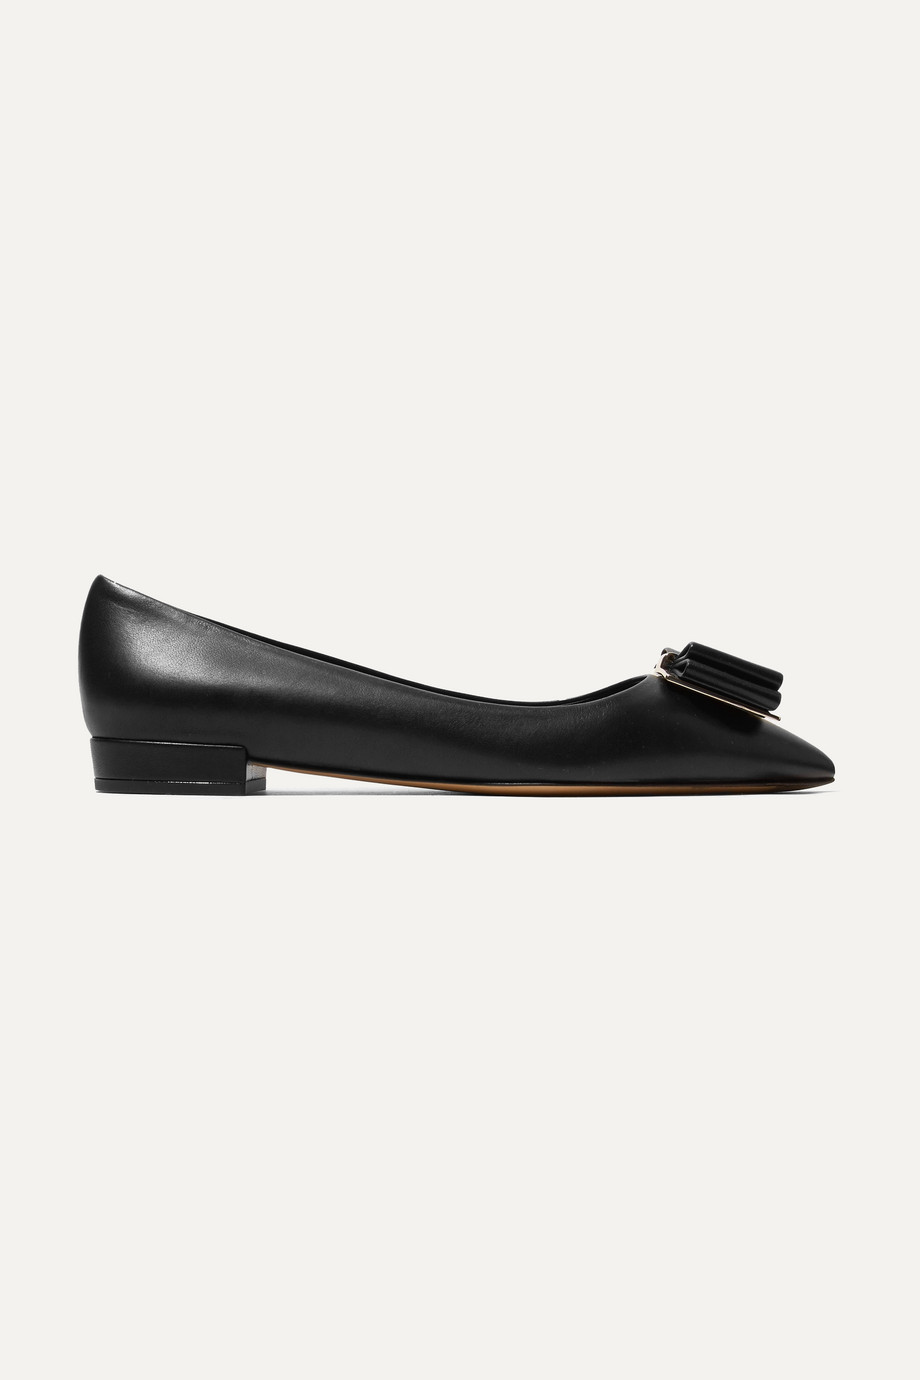 Salvatore Ferragamo Zeri bow-embellished leather point-toe flats